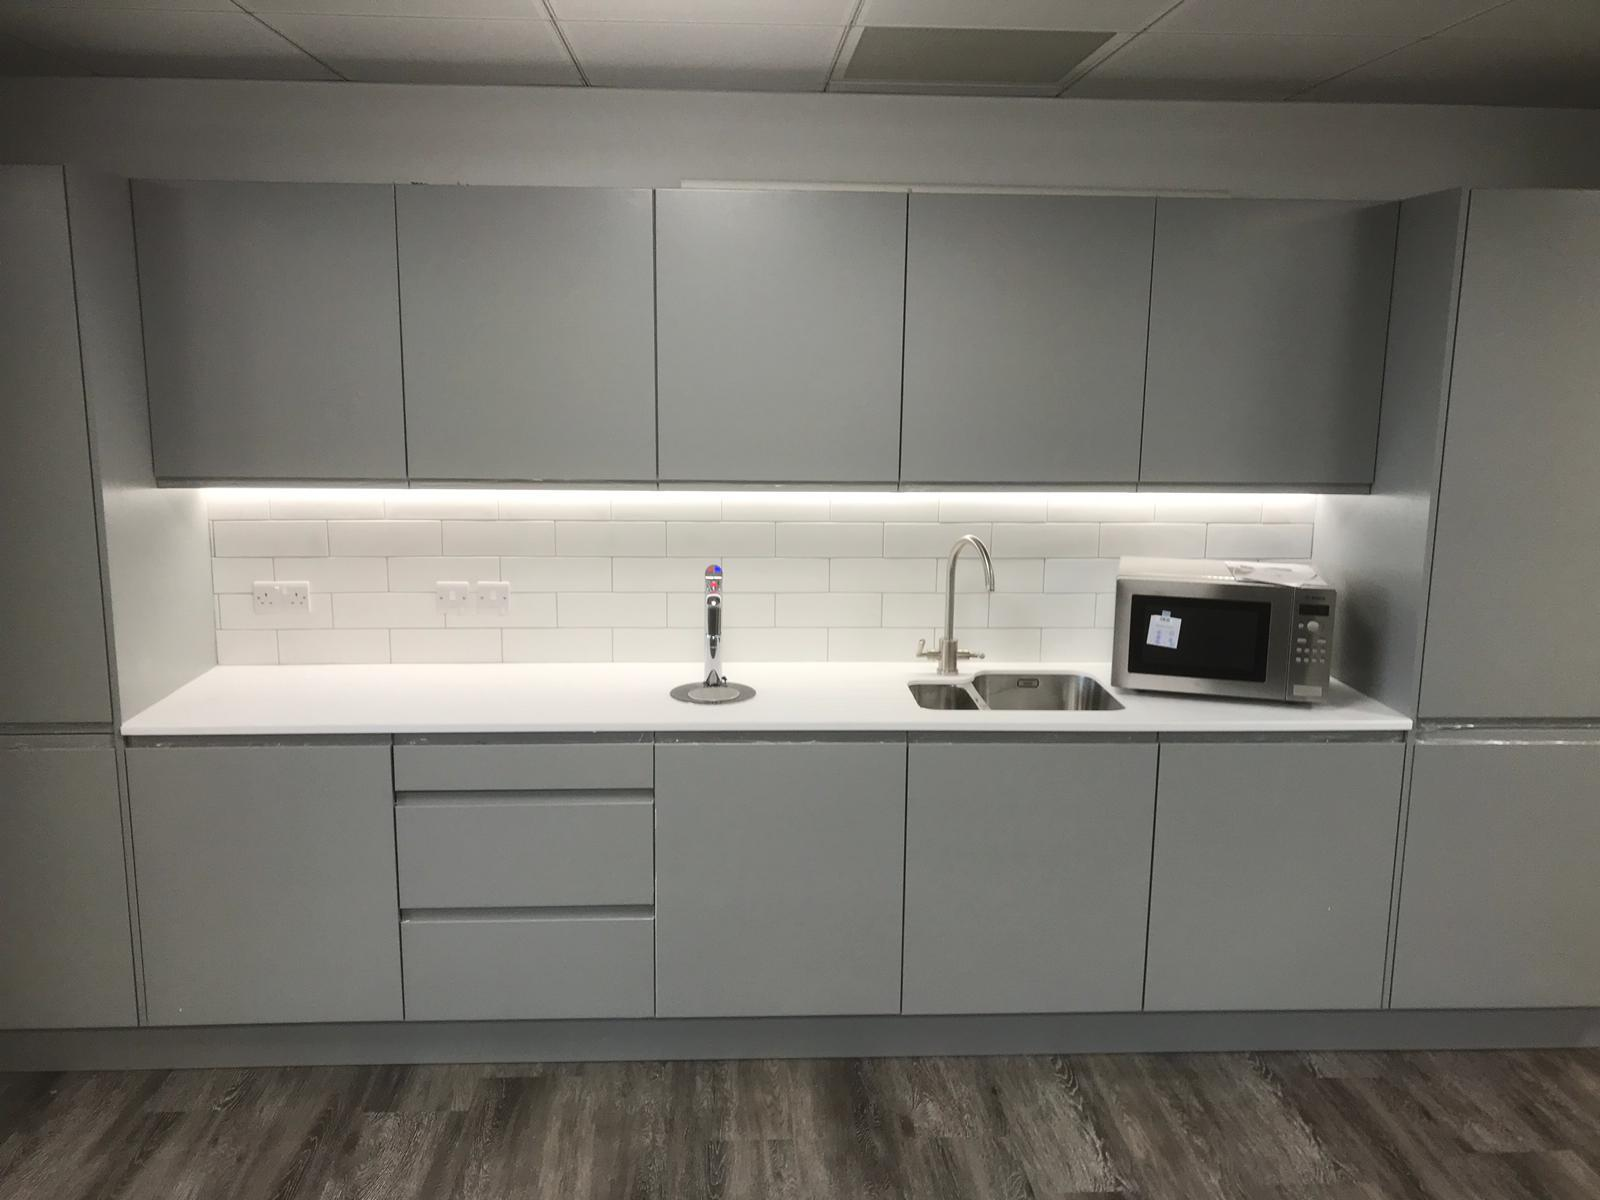 Grey Kitchen for an Office